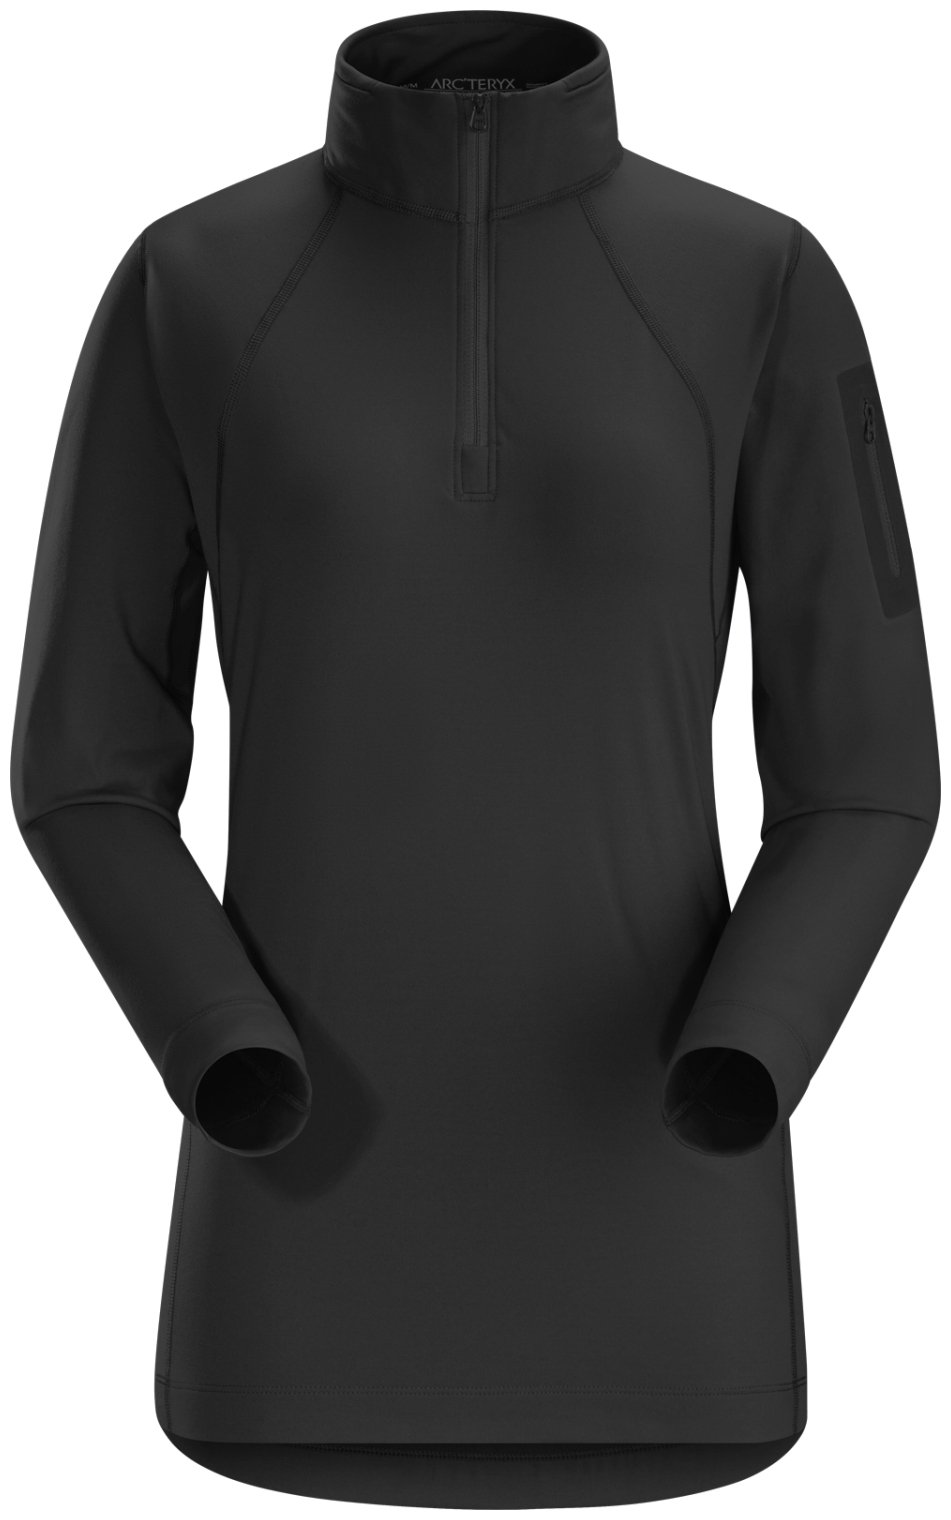 Arc'teryx Rho LT Zip - Women's Black Small